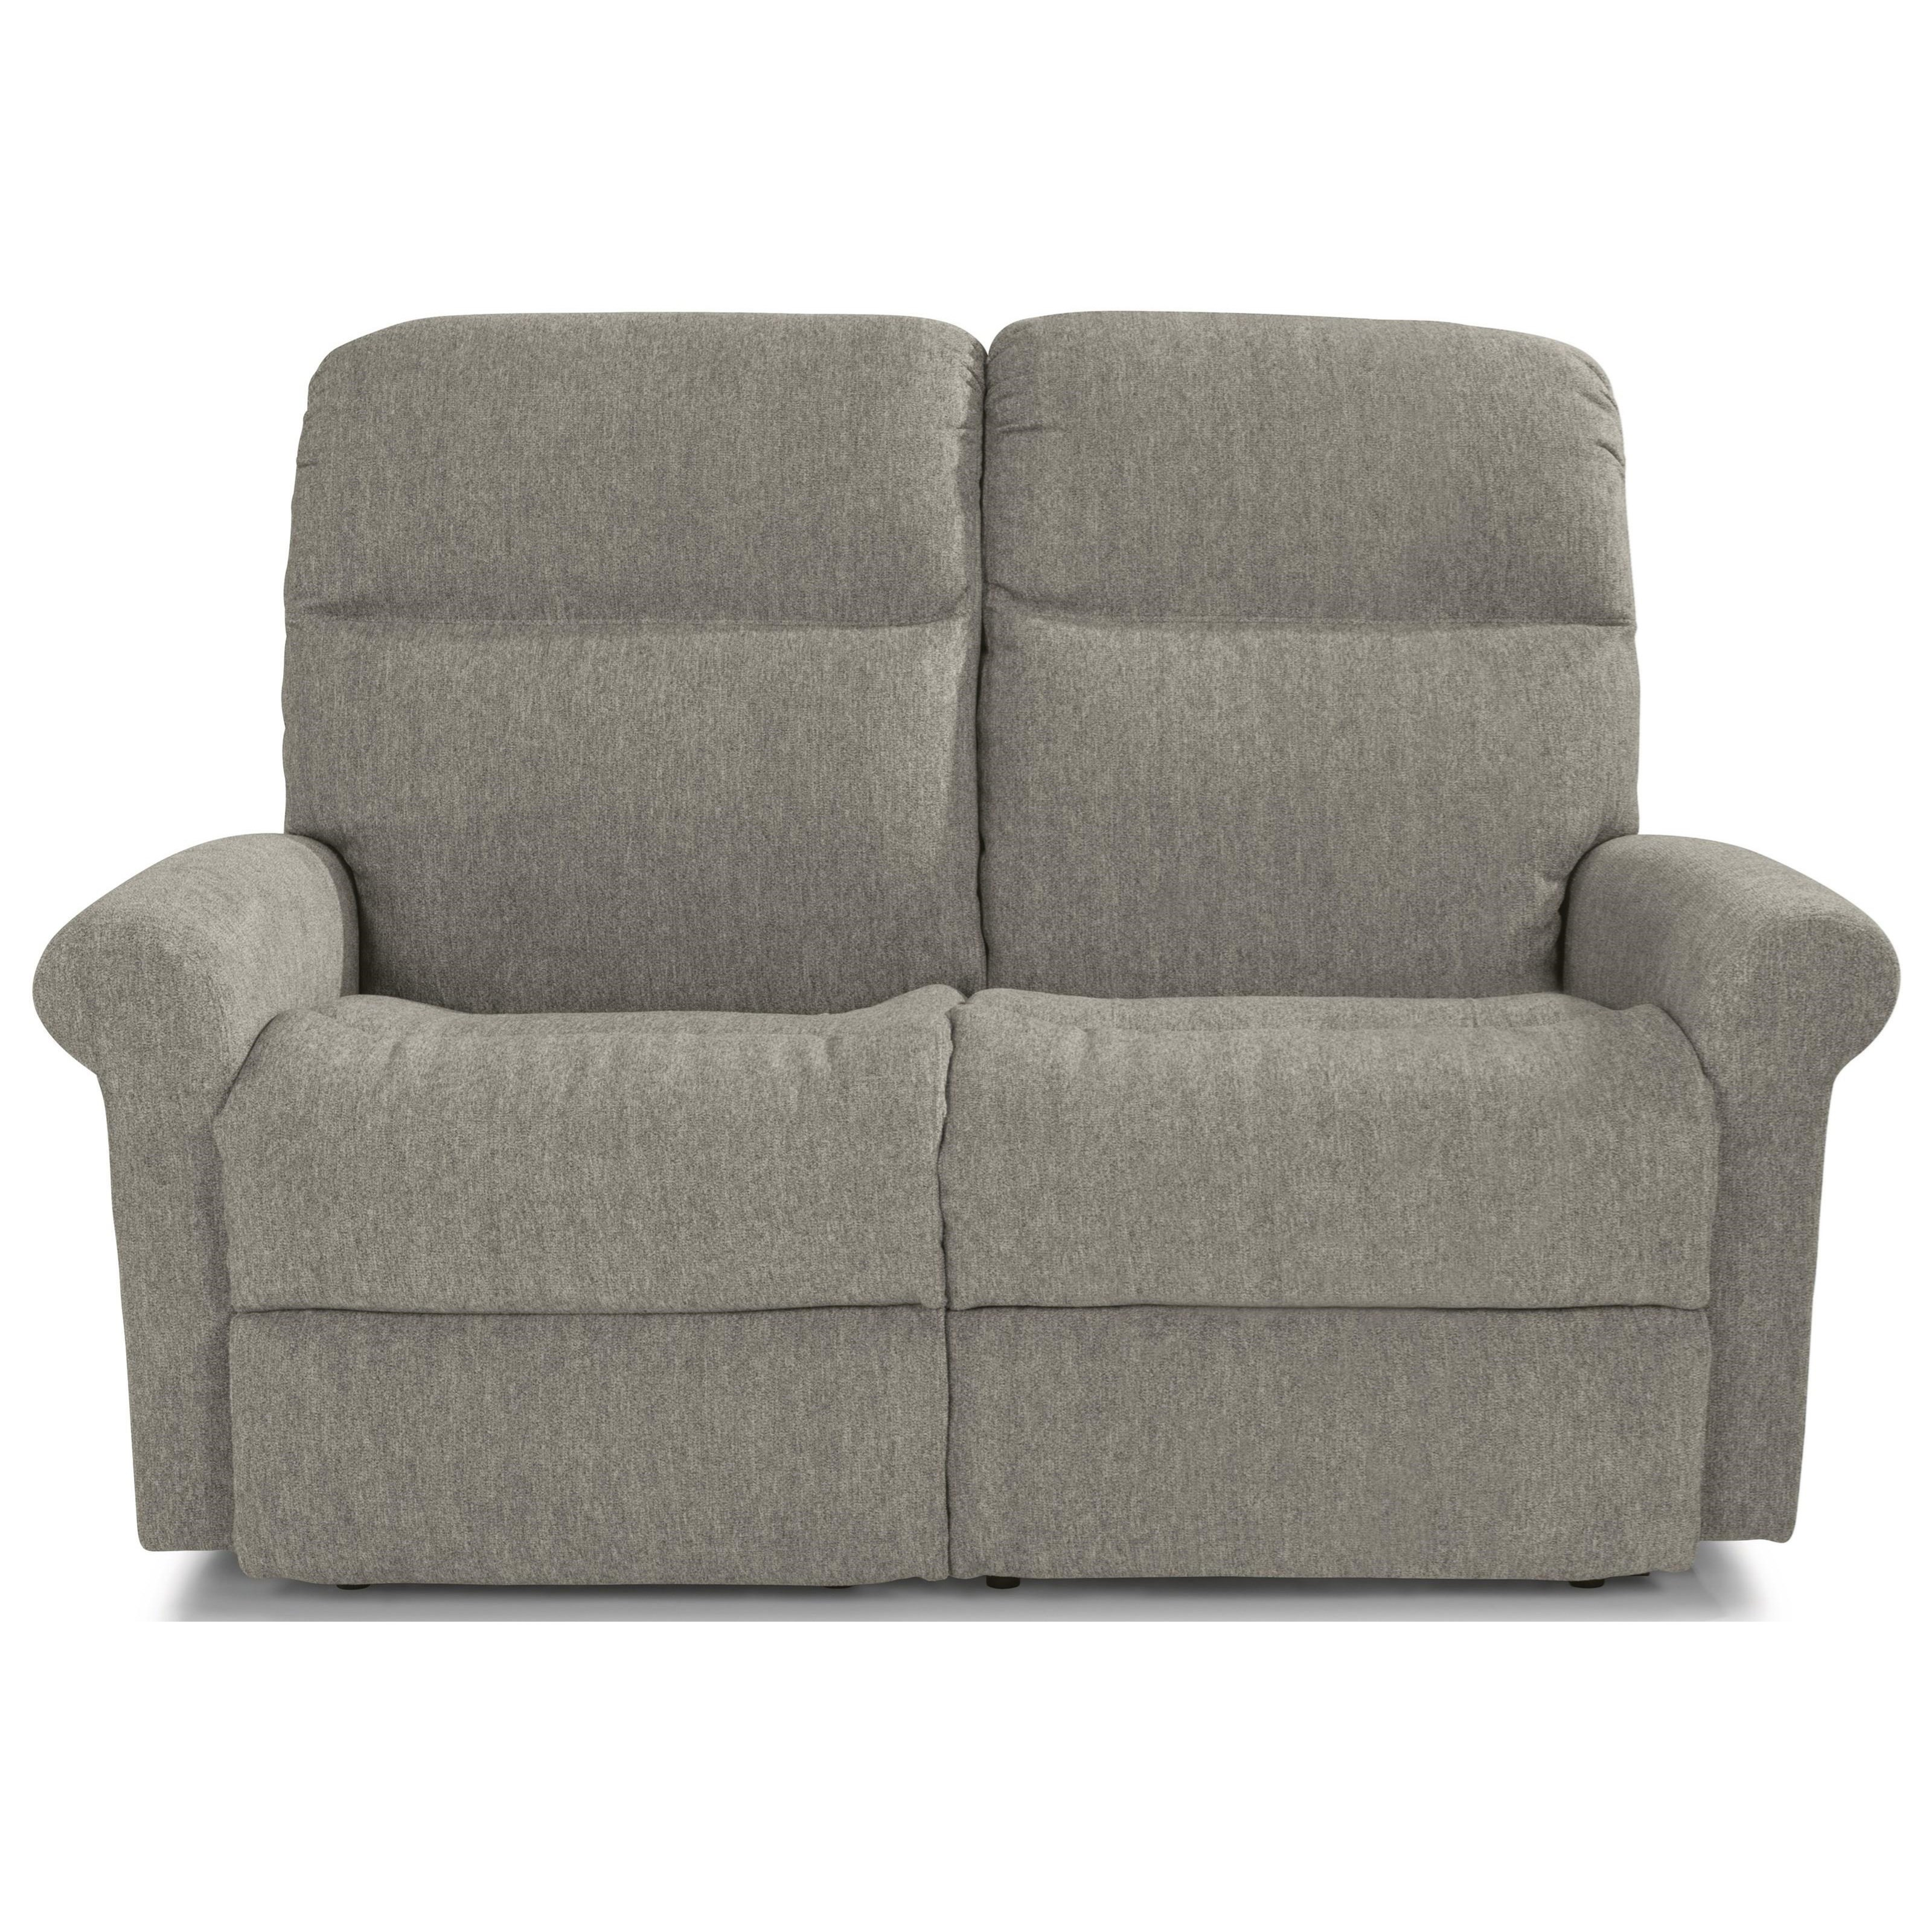 Casual Power Reclining Loveseat with Power Headrests and USB Charging Ports